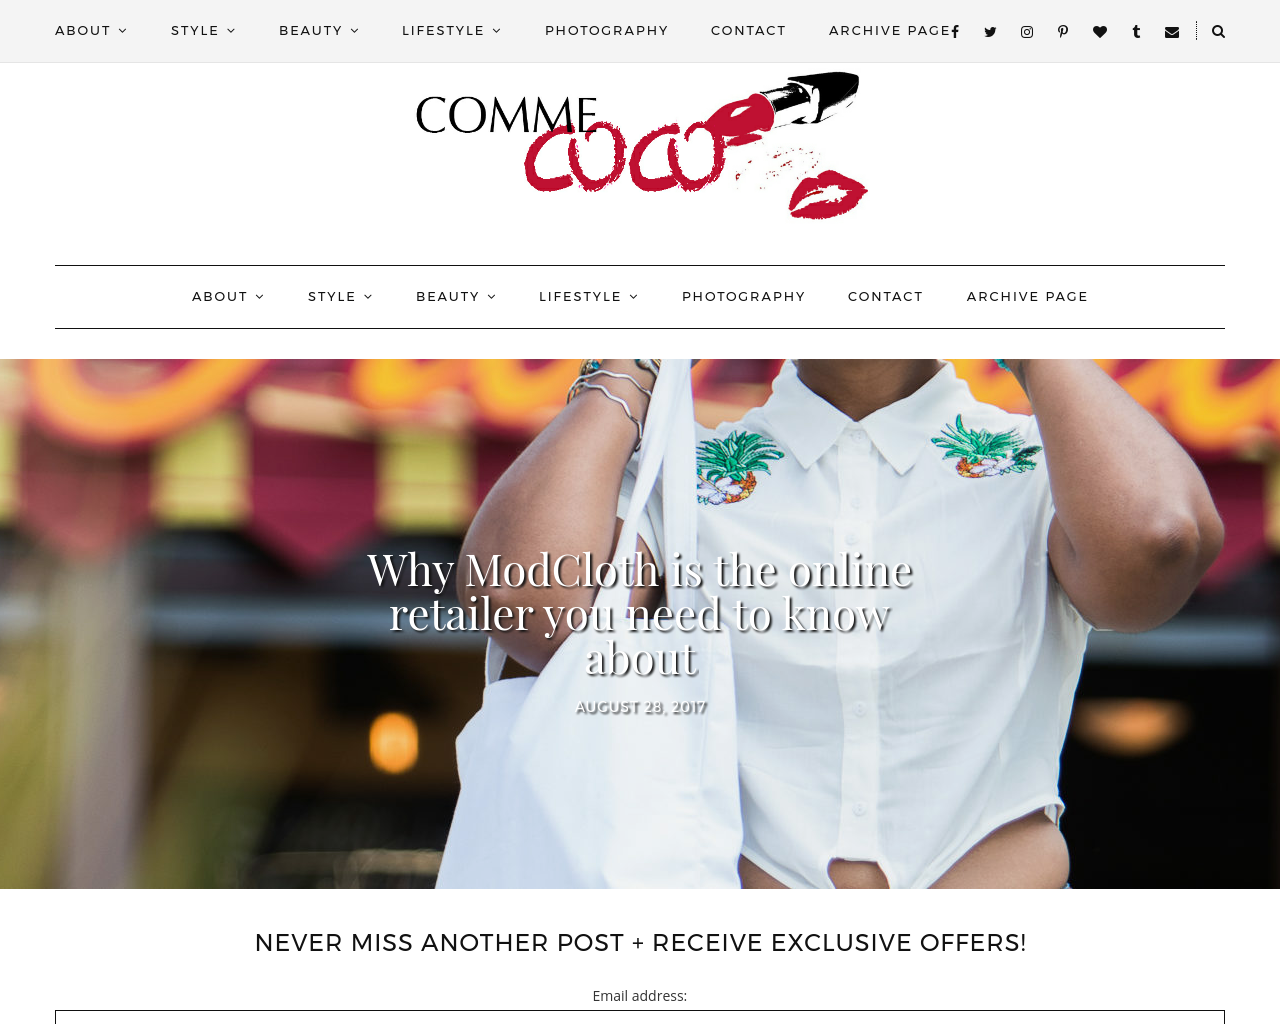 Comme-Coco-Advertising-Reviews-Pricing